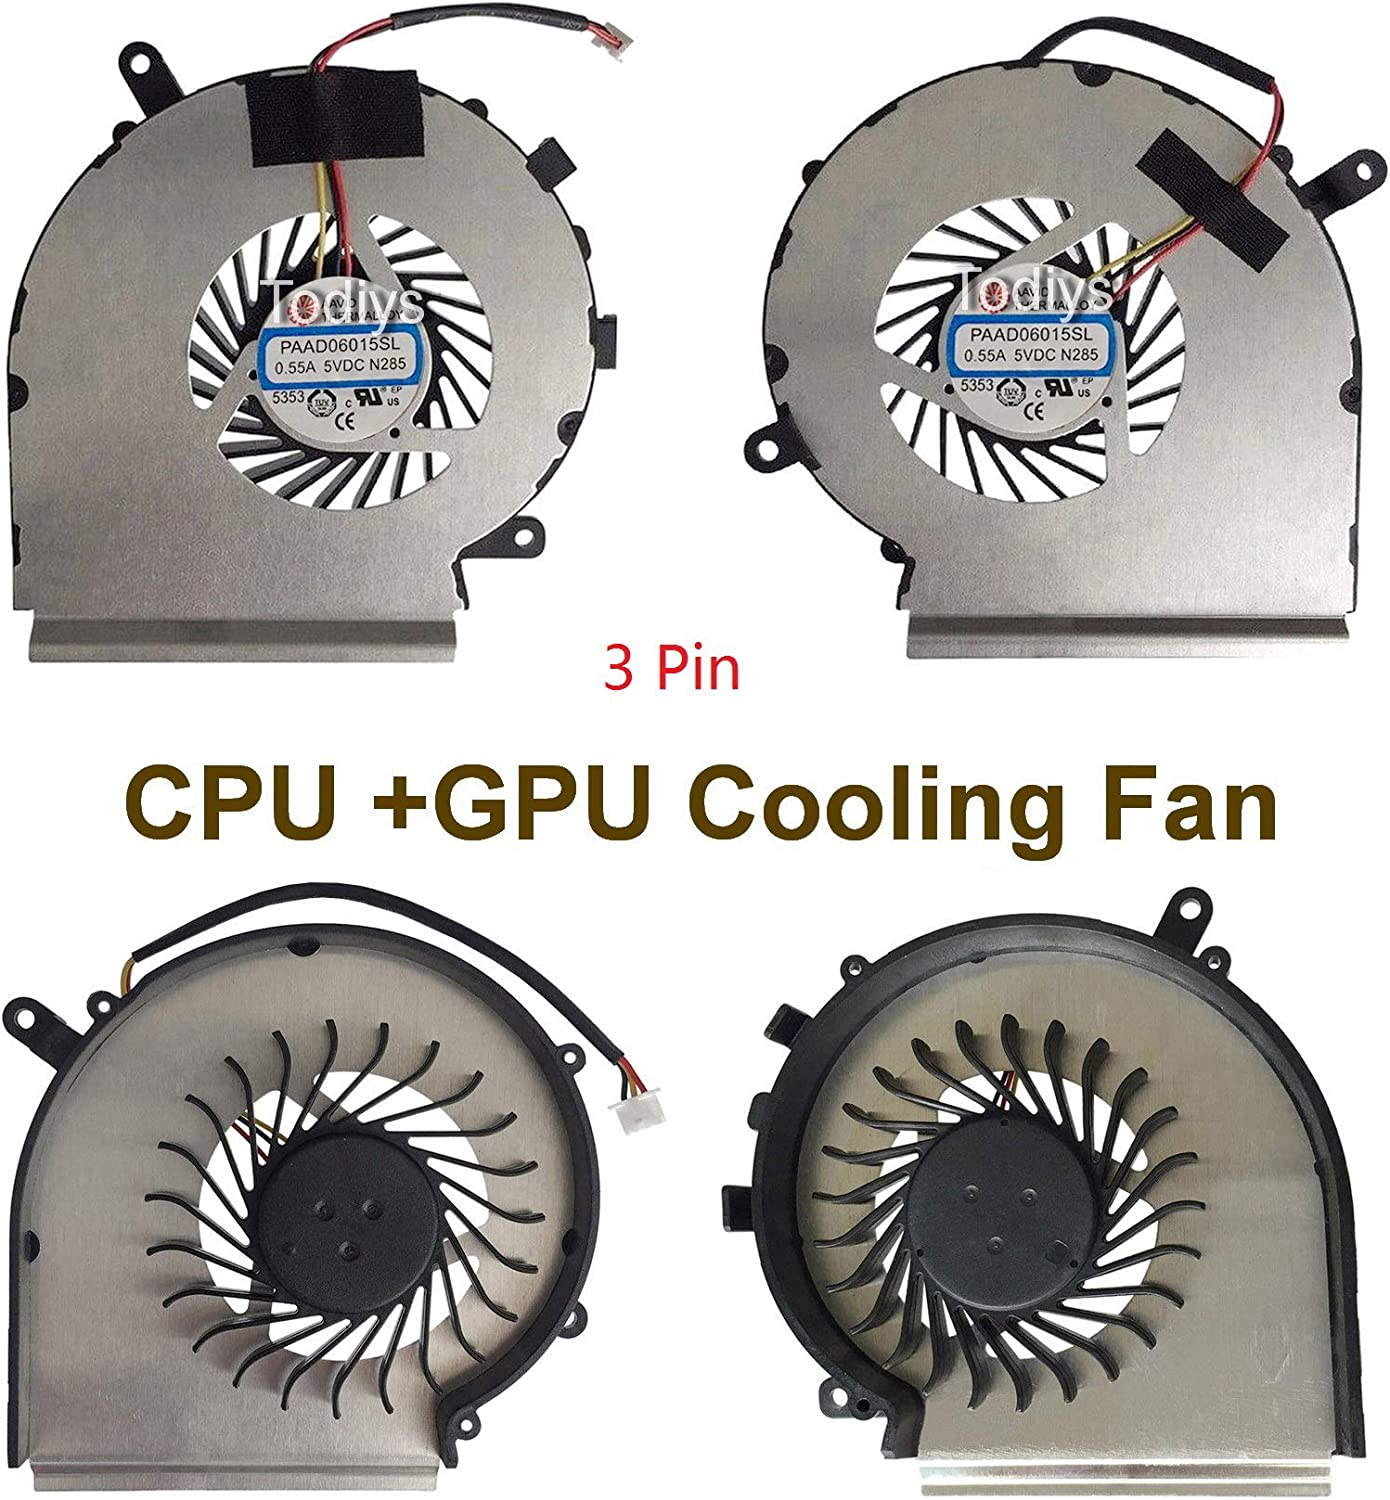 Todiys CPU + GPU Cooling Fan for MSI GE72 6QC 6QD 6QE 6QF 6QL 7RE 7RD Apache Pro Series GE72 6QC-011RU 6QC-047NE 6QD-008XFR 6QD-439FR 6QE-022NL 6QE-249AU GE72 6QF-029US 6QL-069UK 7RE-030US 7RD-052NE